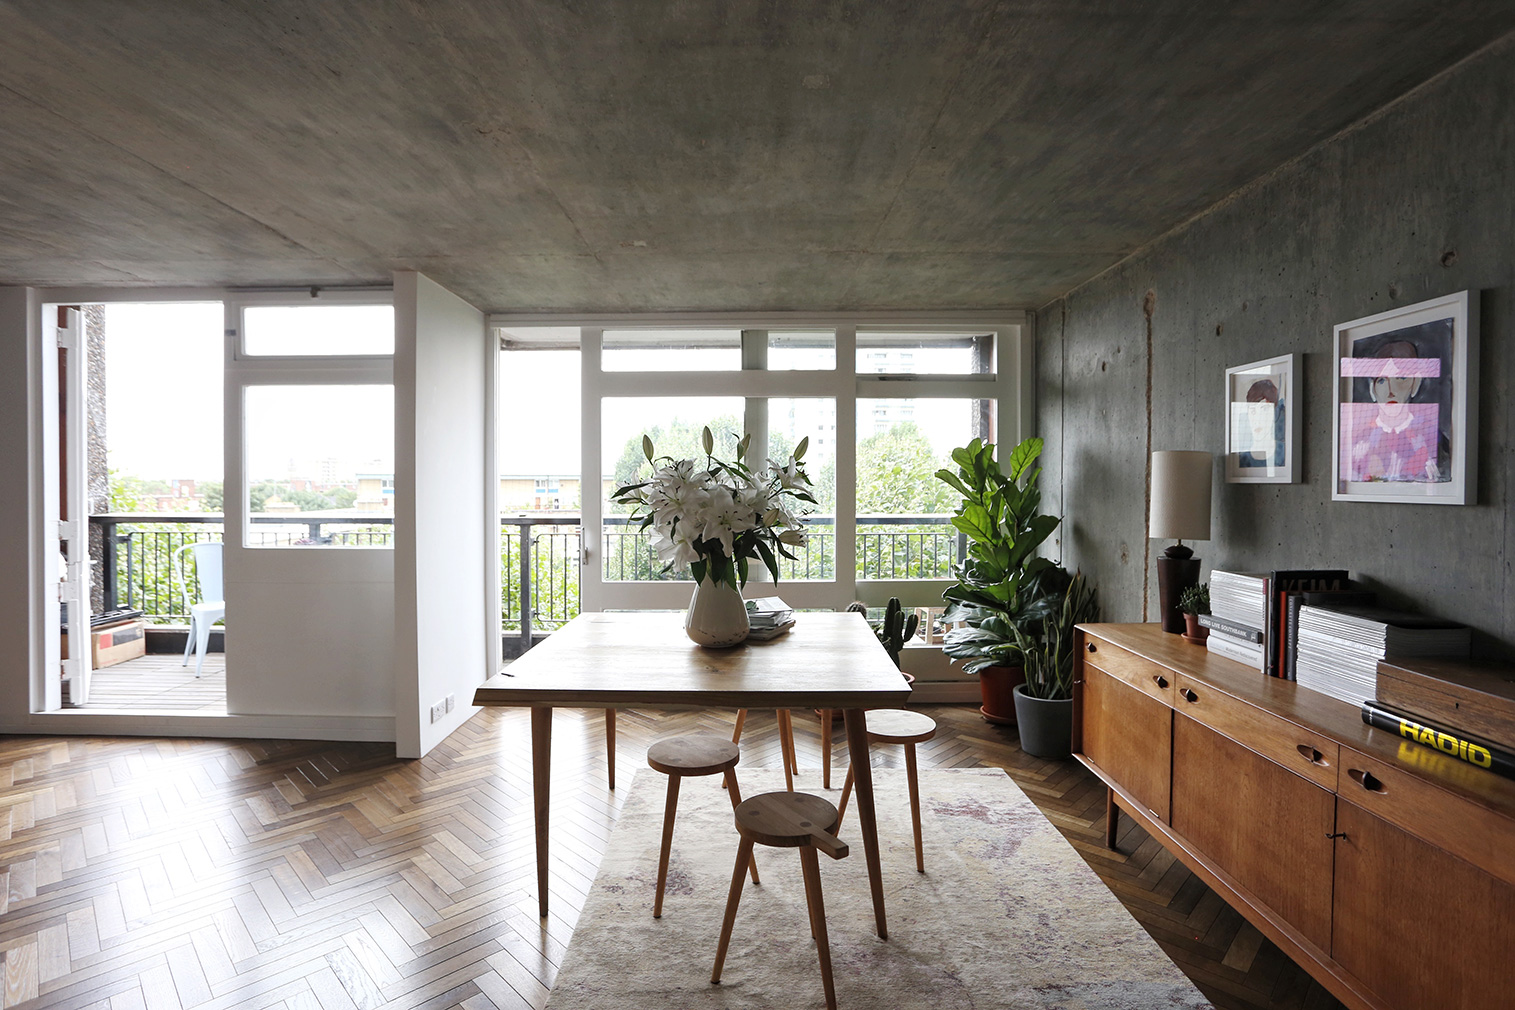 Industrial style is elevated with polished timber and steel in this London apartment, which lies in Ernö Goldfinger's brutalist icon Trellick Tower.